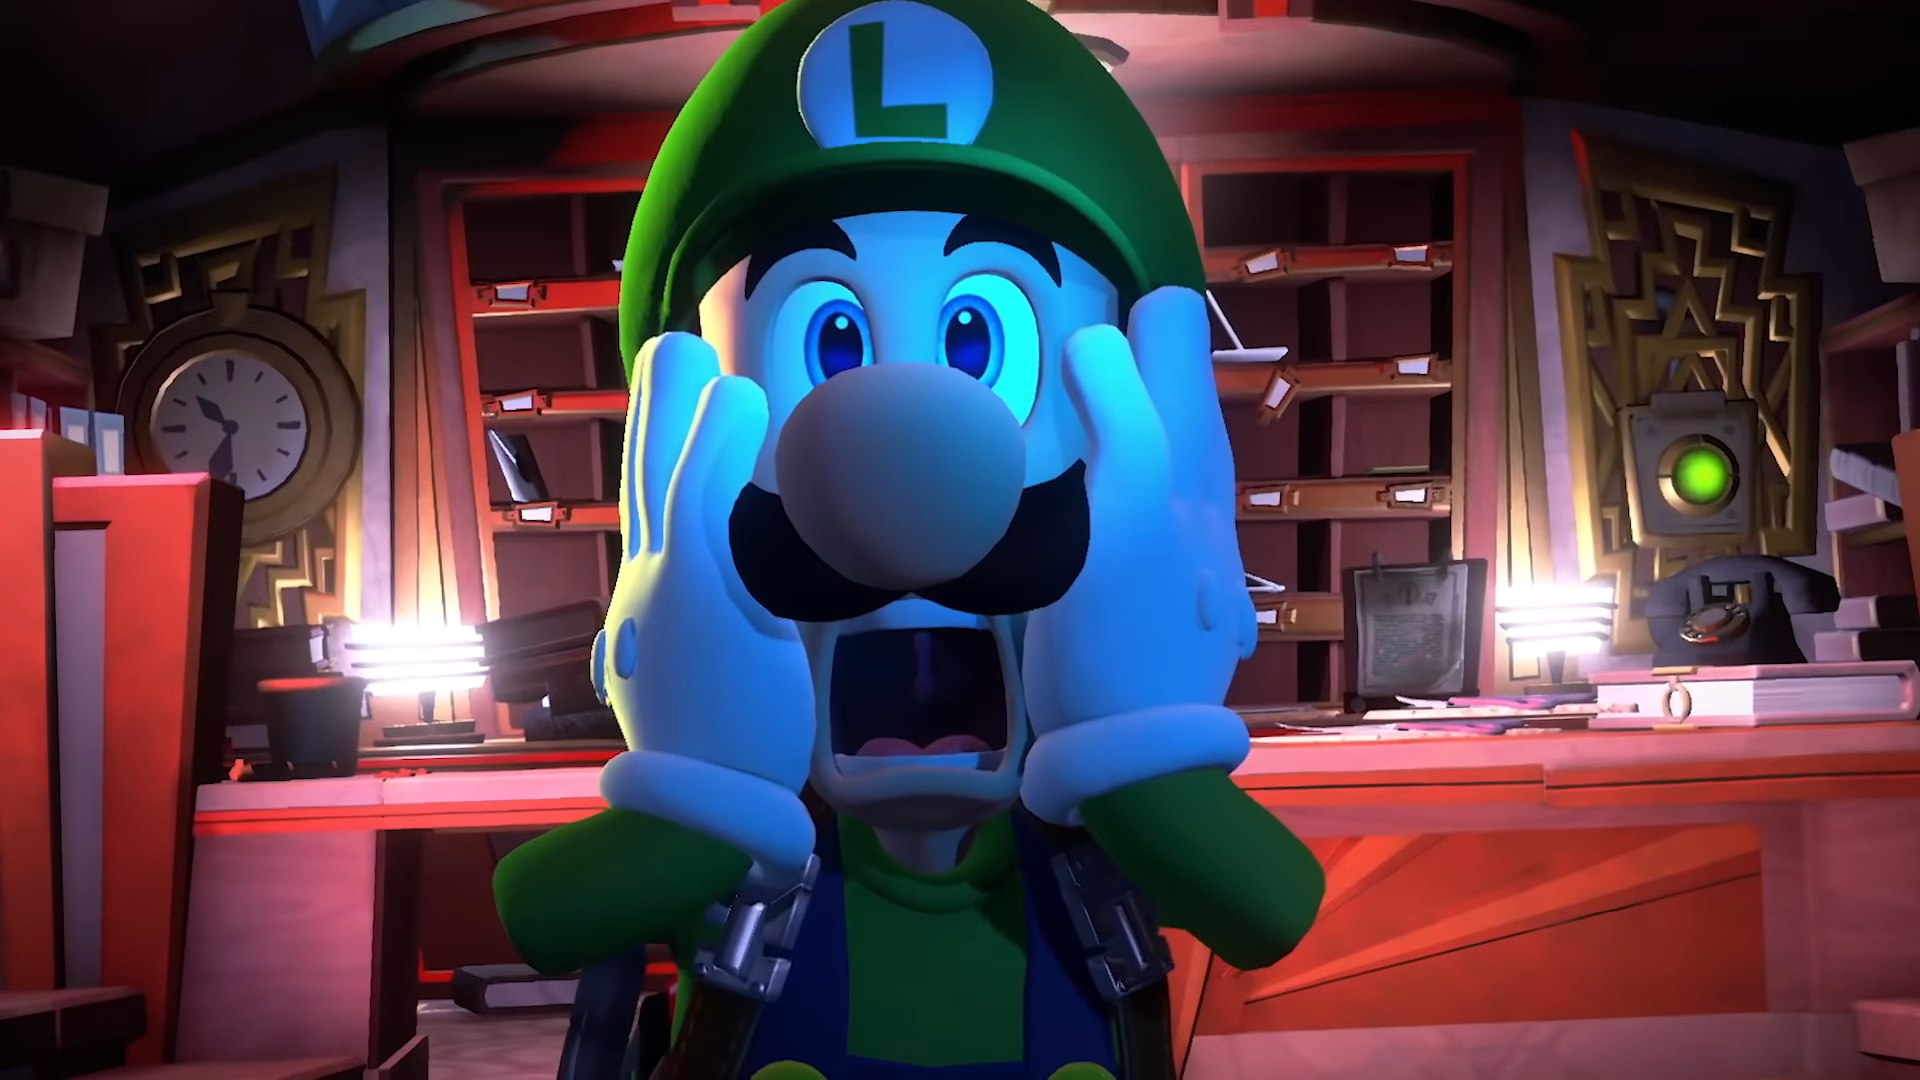 Korean Ratings Board Suggests Luigi's Mansion 3 Will Be Ready To Scare This Summer